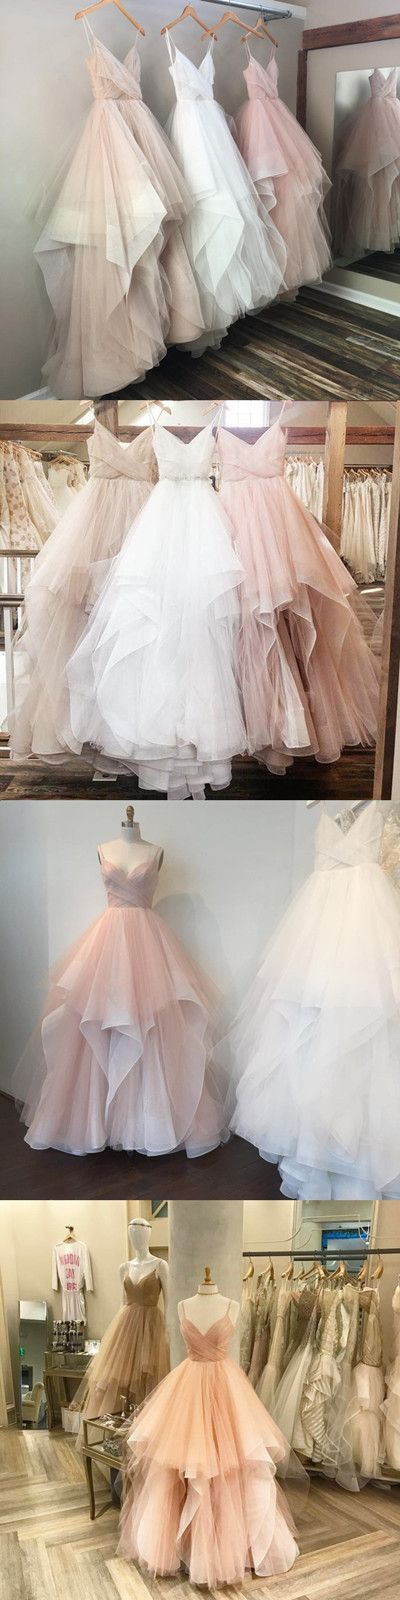 elegant tulle princess ball gown wedding dresses,available in champagne,blush pink,champagne ! #wedding #weddinggowns #bridal #bride #pink #champagne #princess #ball gowns #vestidosdenoiva #novias #elegant #weddingdress2017 #tulle #moda